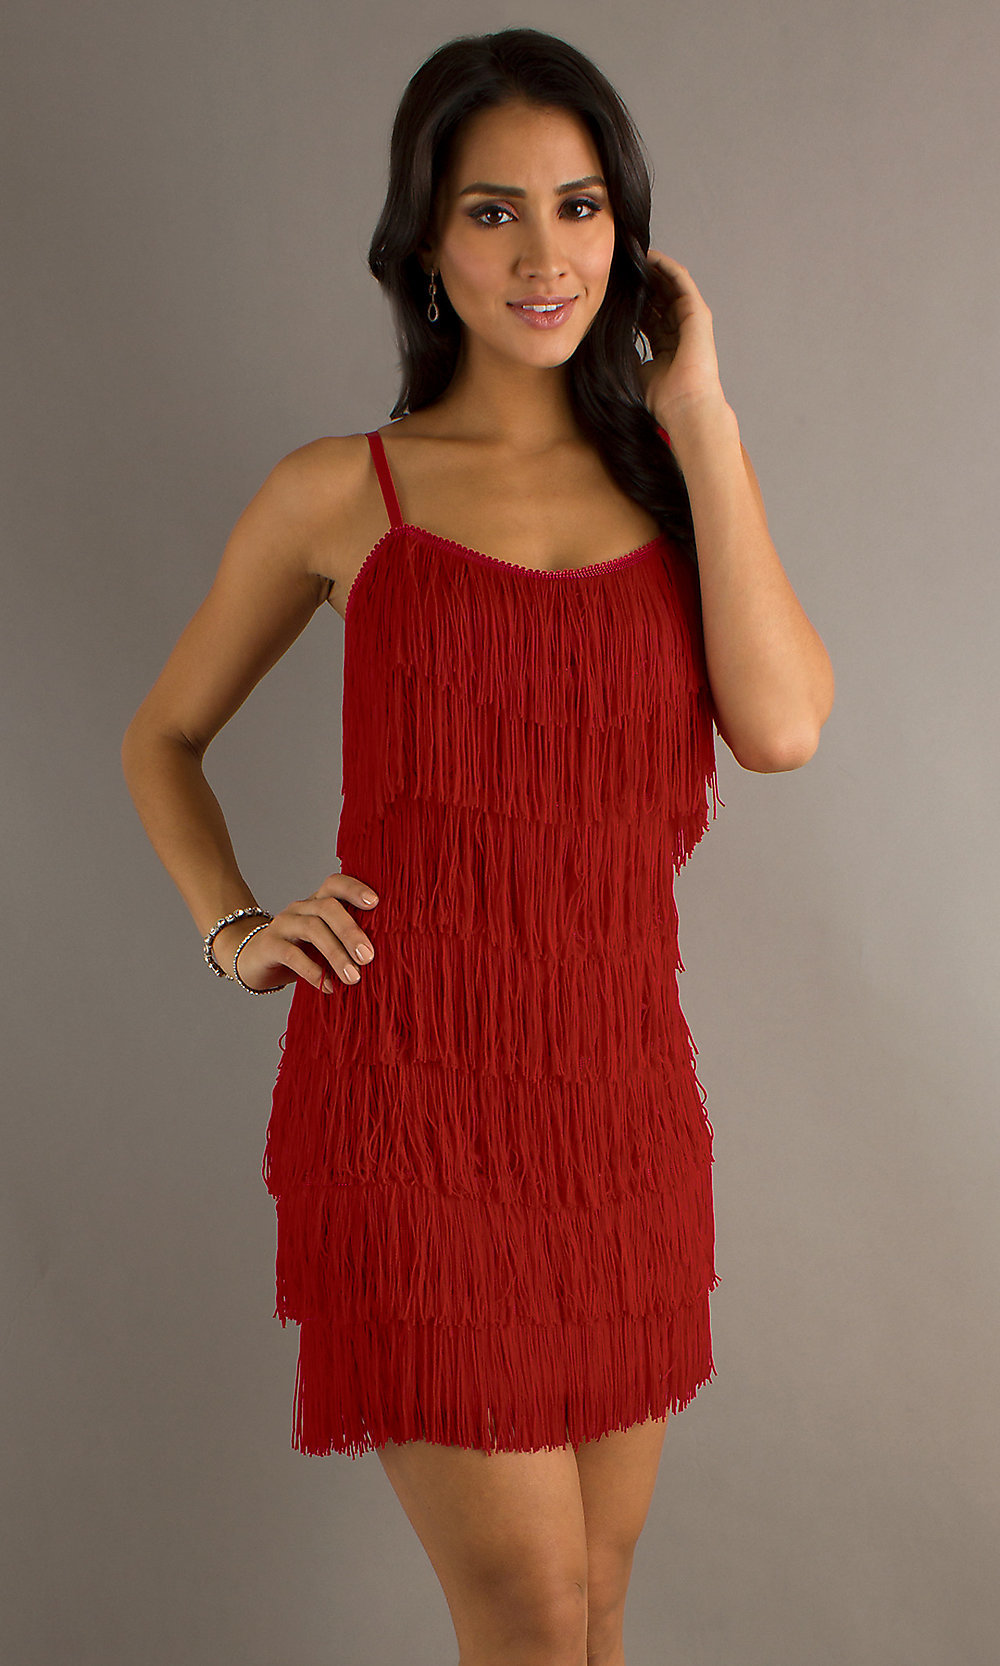 short fringe dresses mini prom dresses club dresses at promgirl